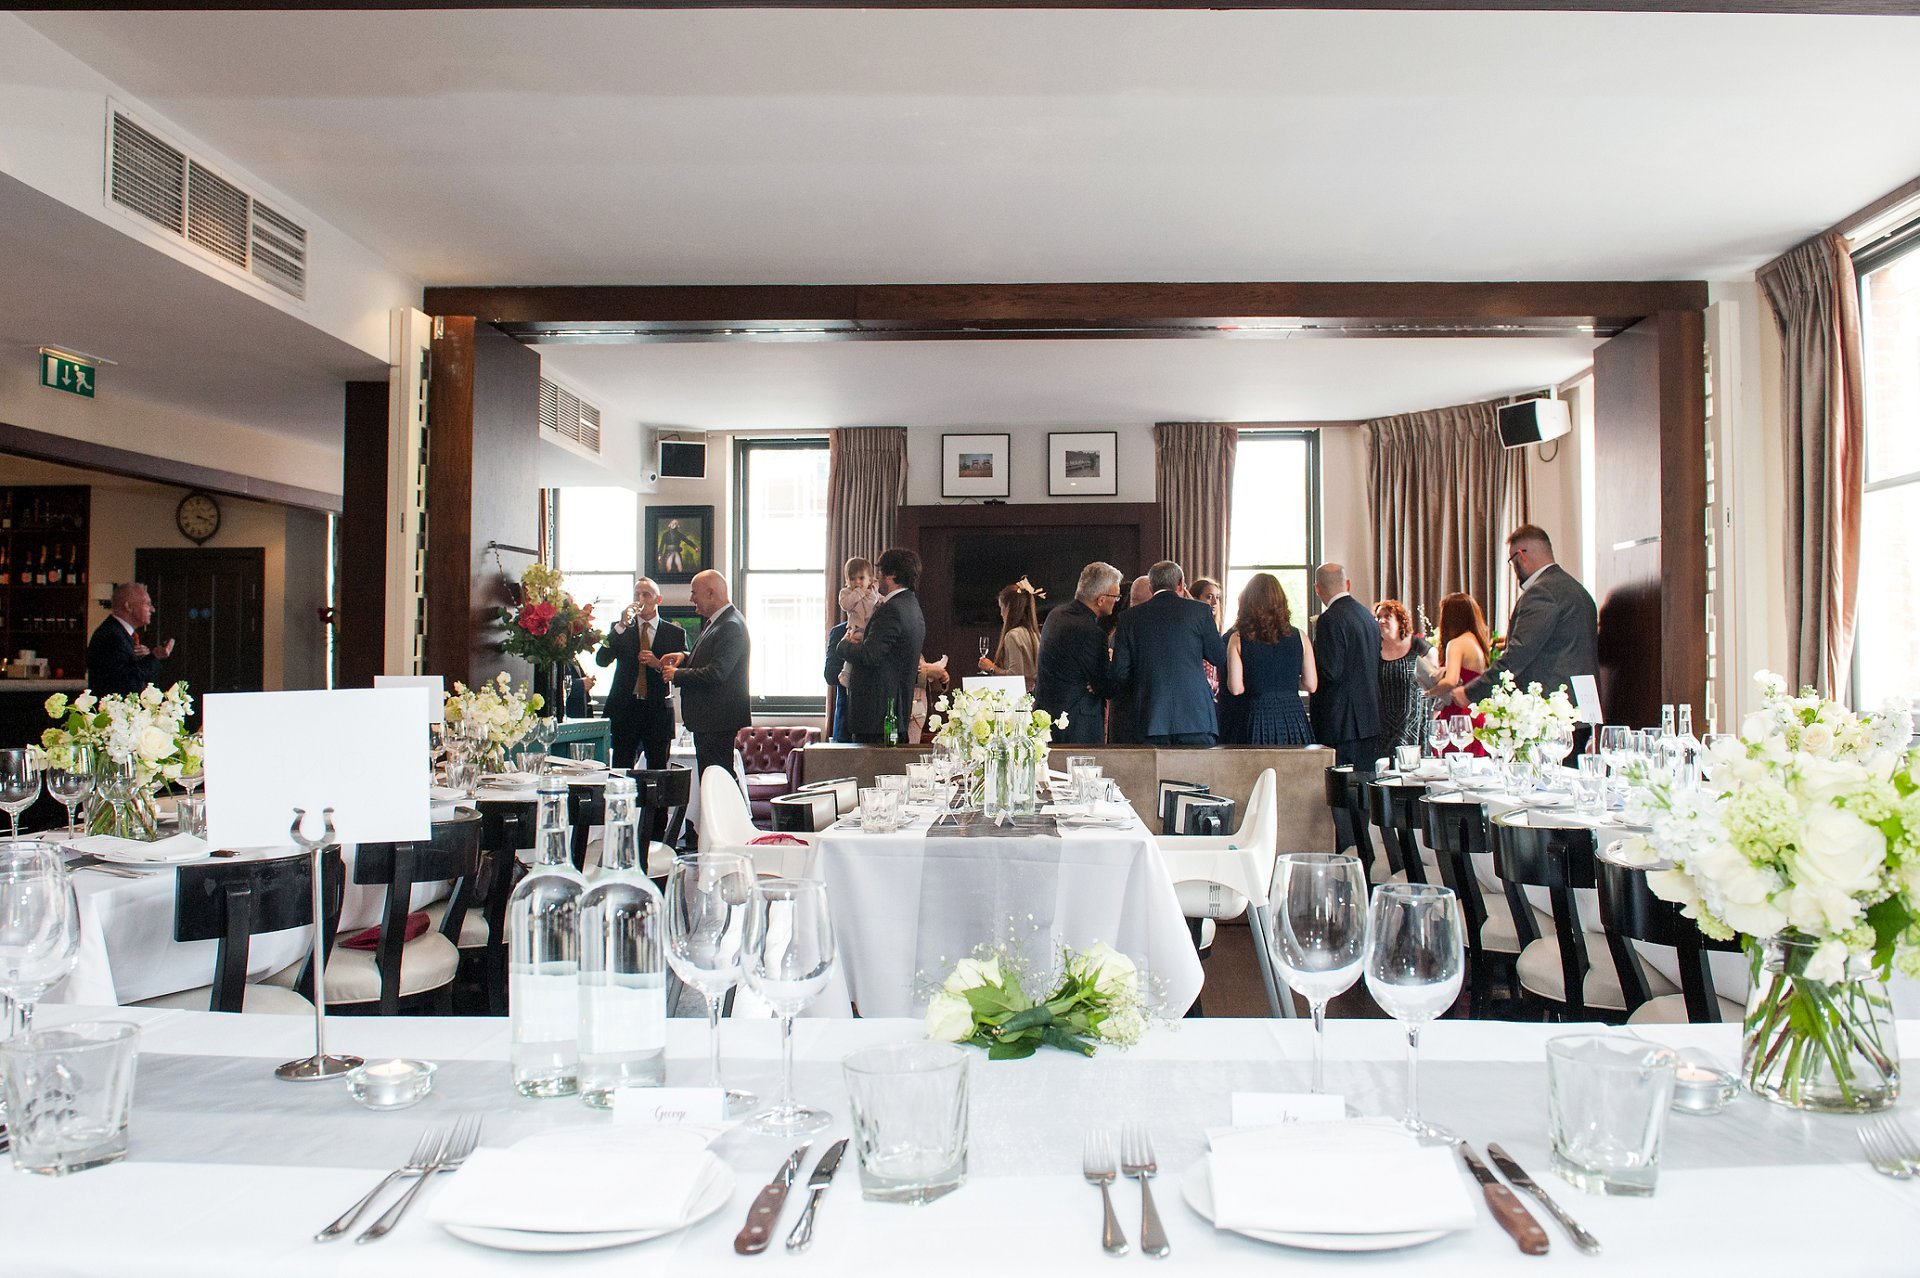 Wedding Reception at Beaufort House Chelsea